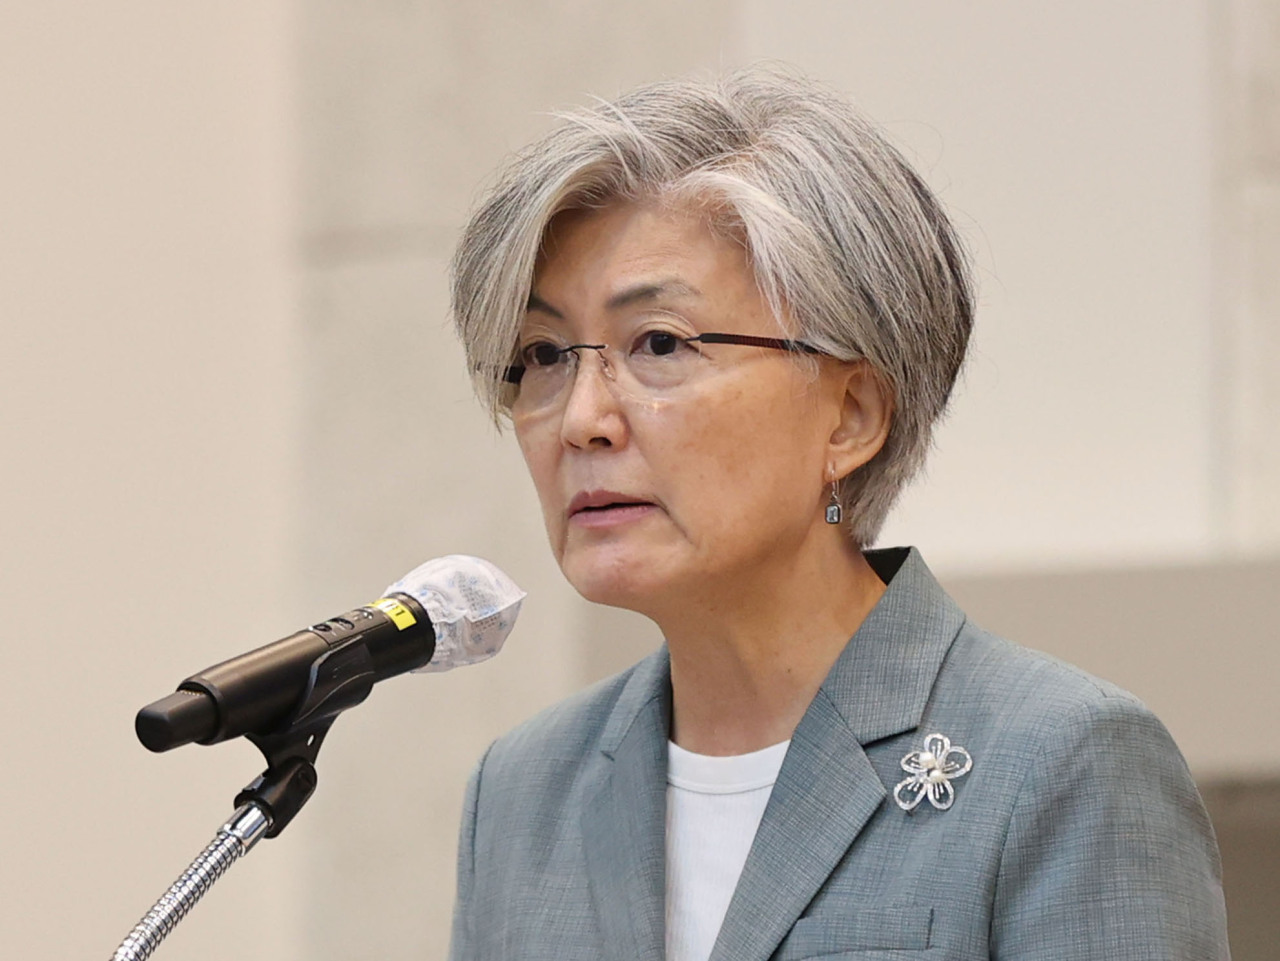 Former Foreign Minister Kang Kyung-wha, now a distinguished professor emeritus at Ewha Womans University, gives a special lecture at the university in September. (Yonhap)